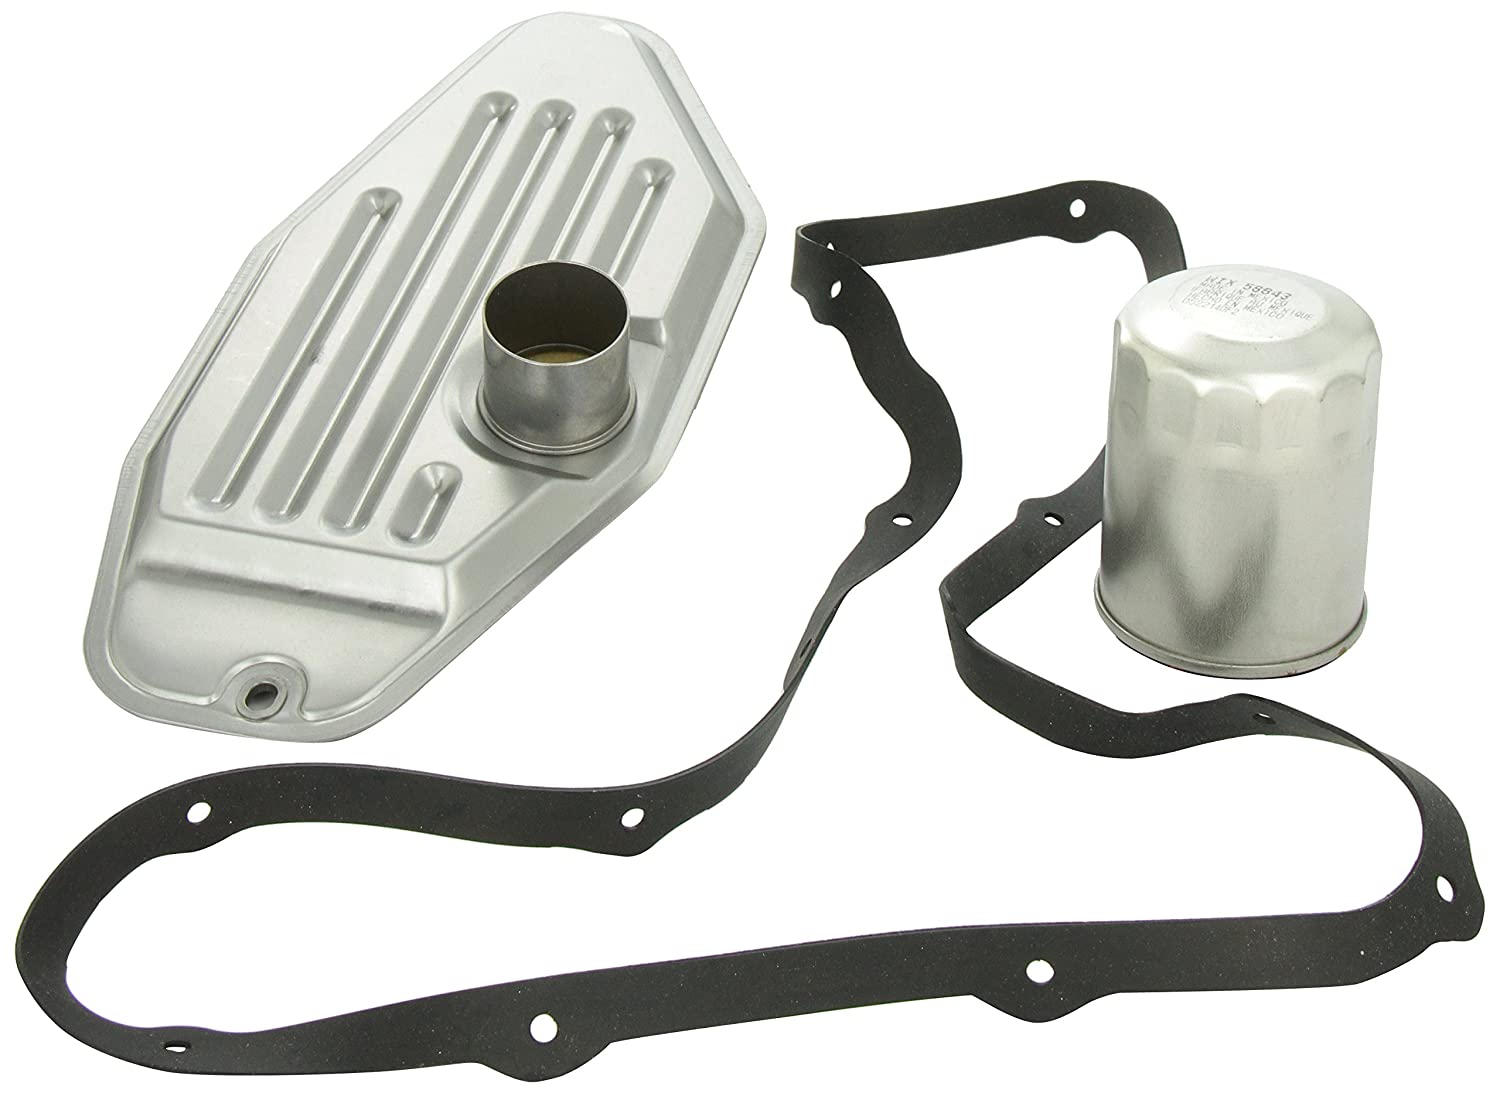 Wix 58843 Automatic Transmission Filter Kit